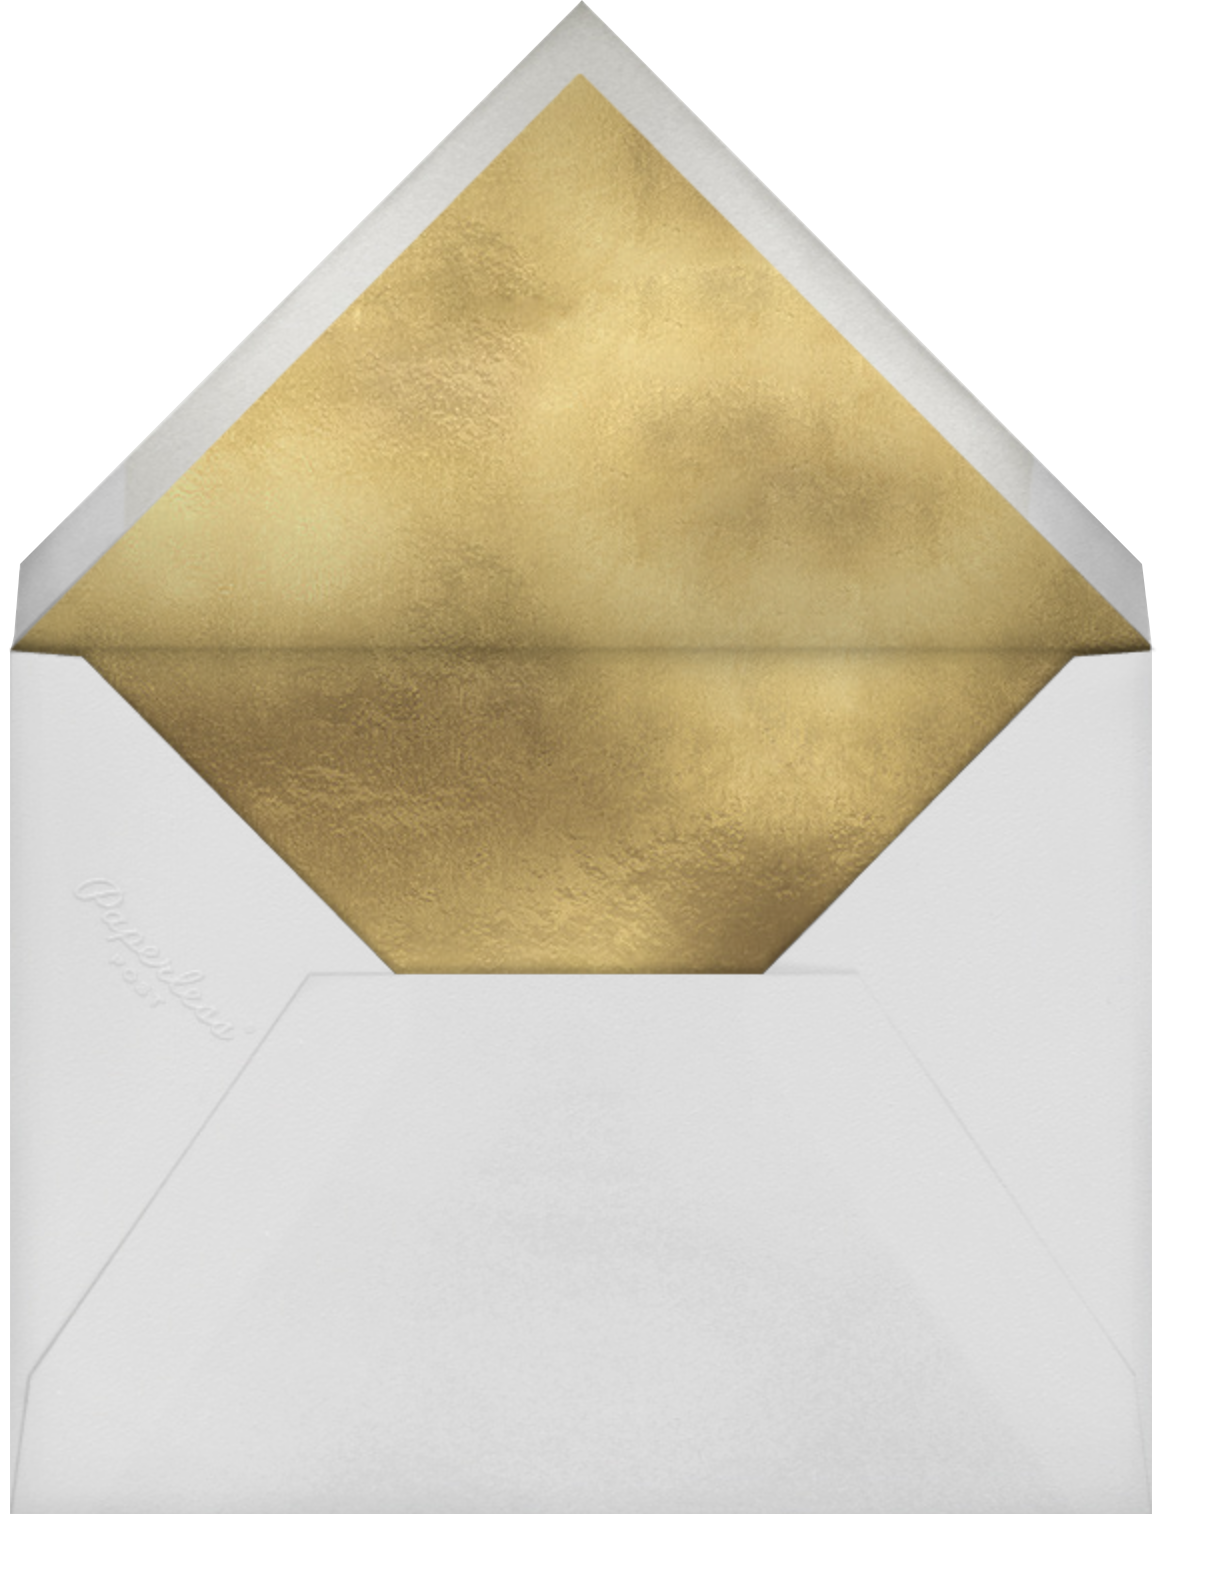 Starry Wreath - Paperless Post - Company holiday party - envelope back